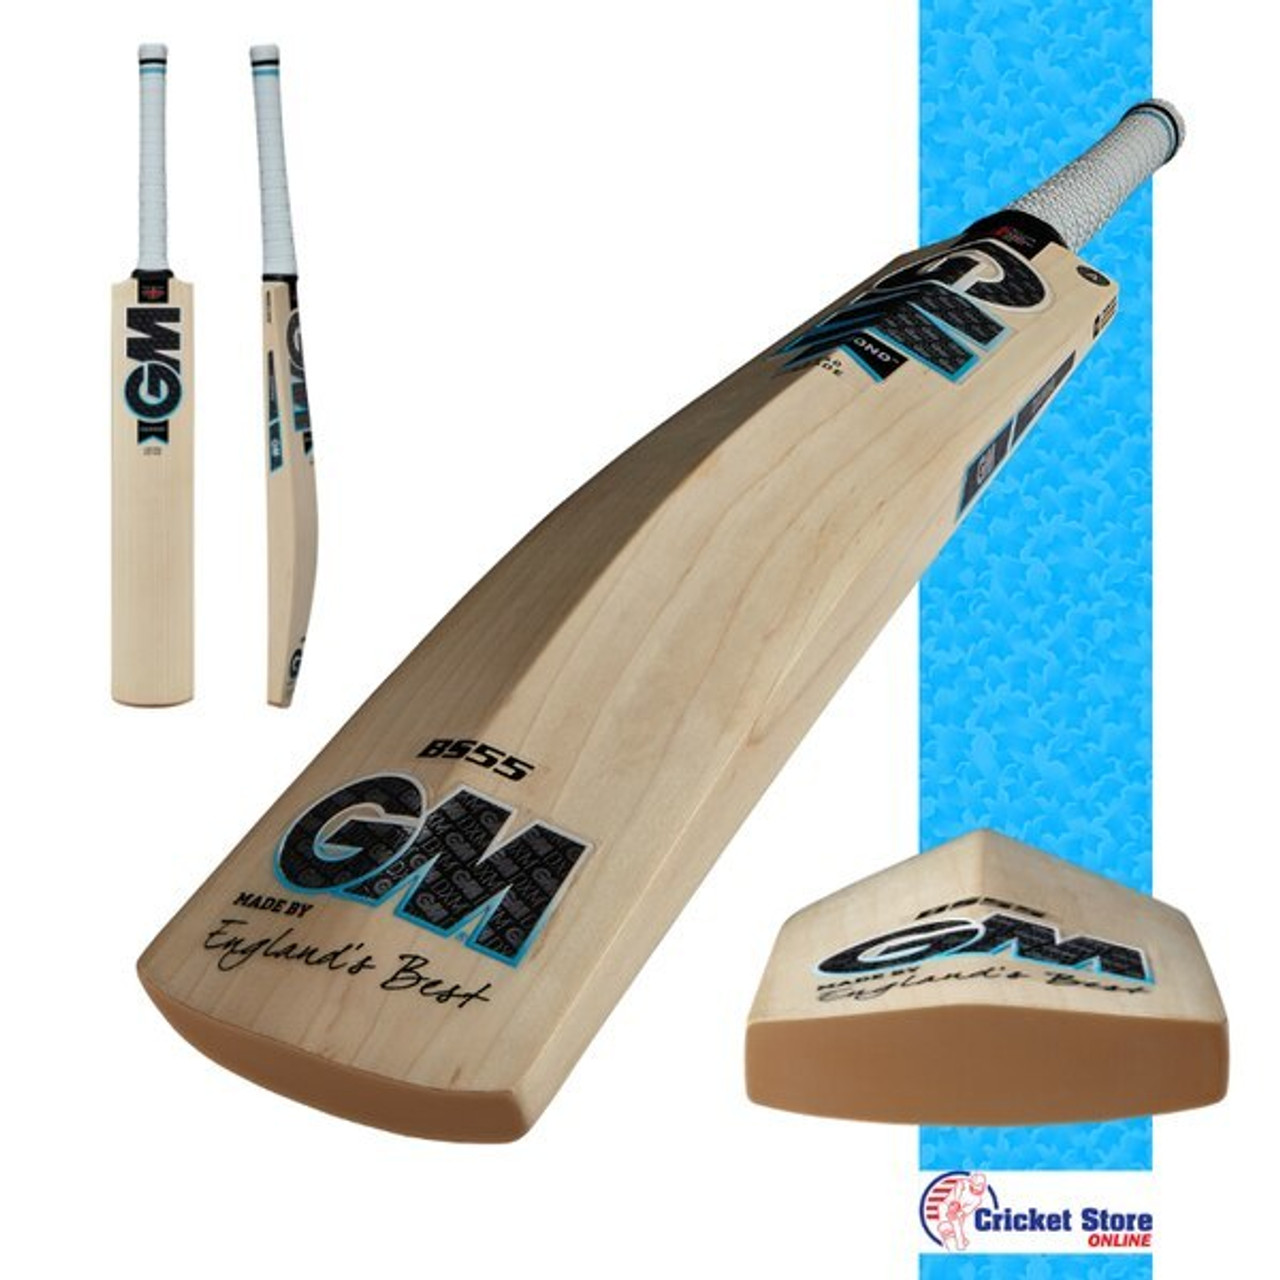 GM Diamond Cricket Bats 2020